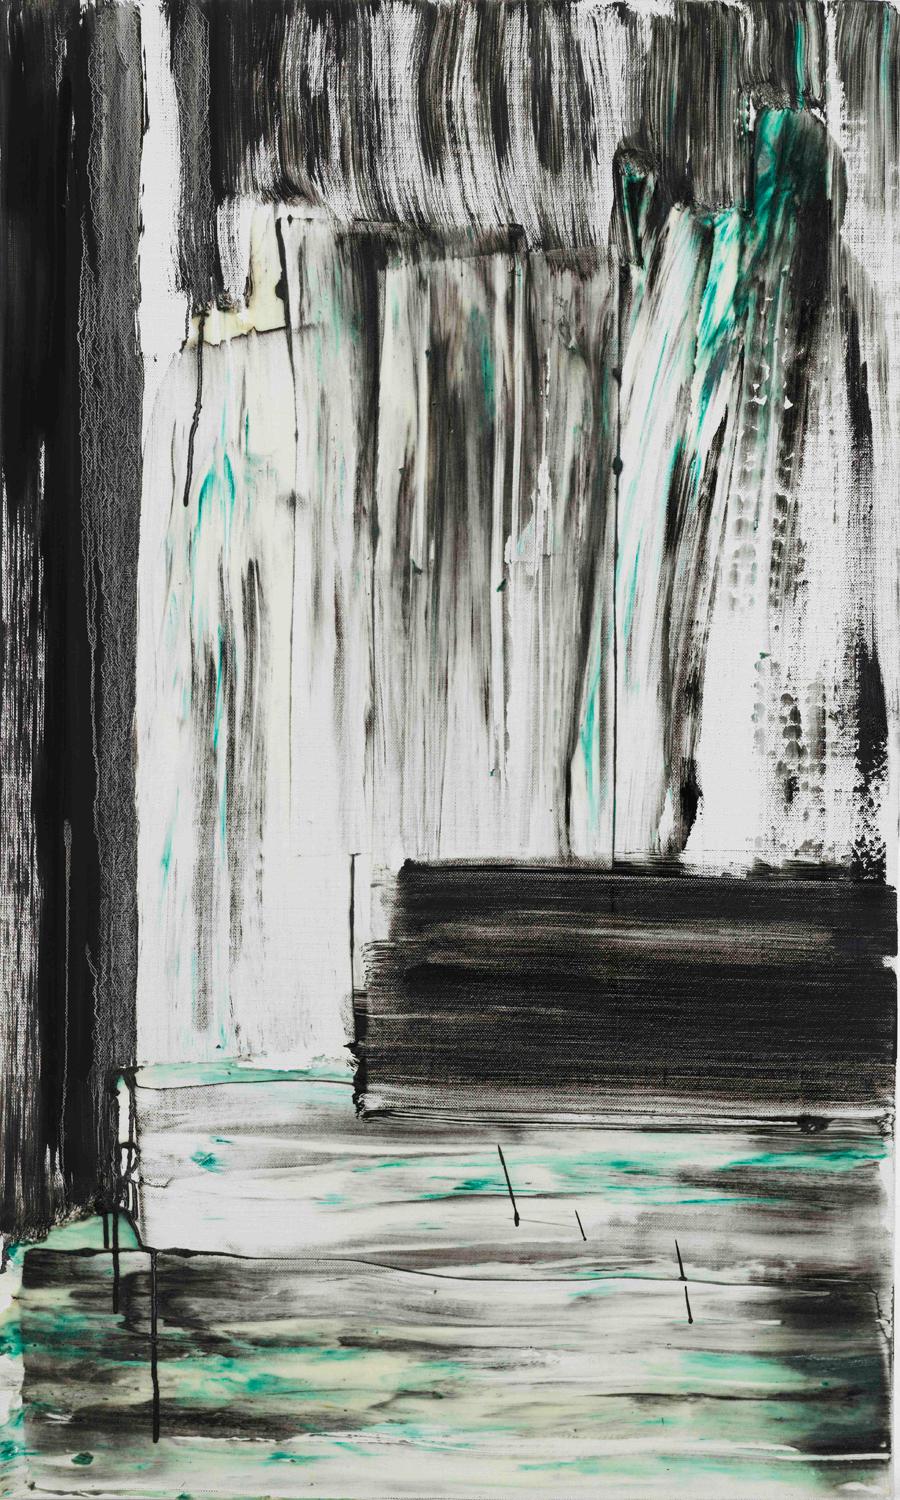 Louise Fishman